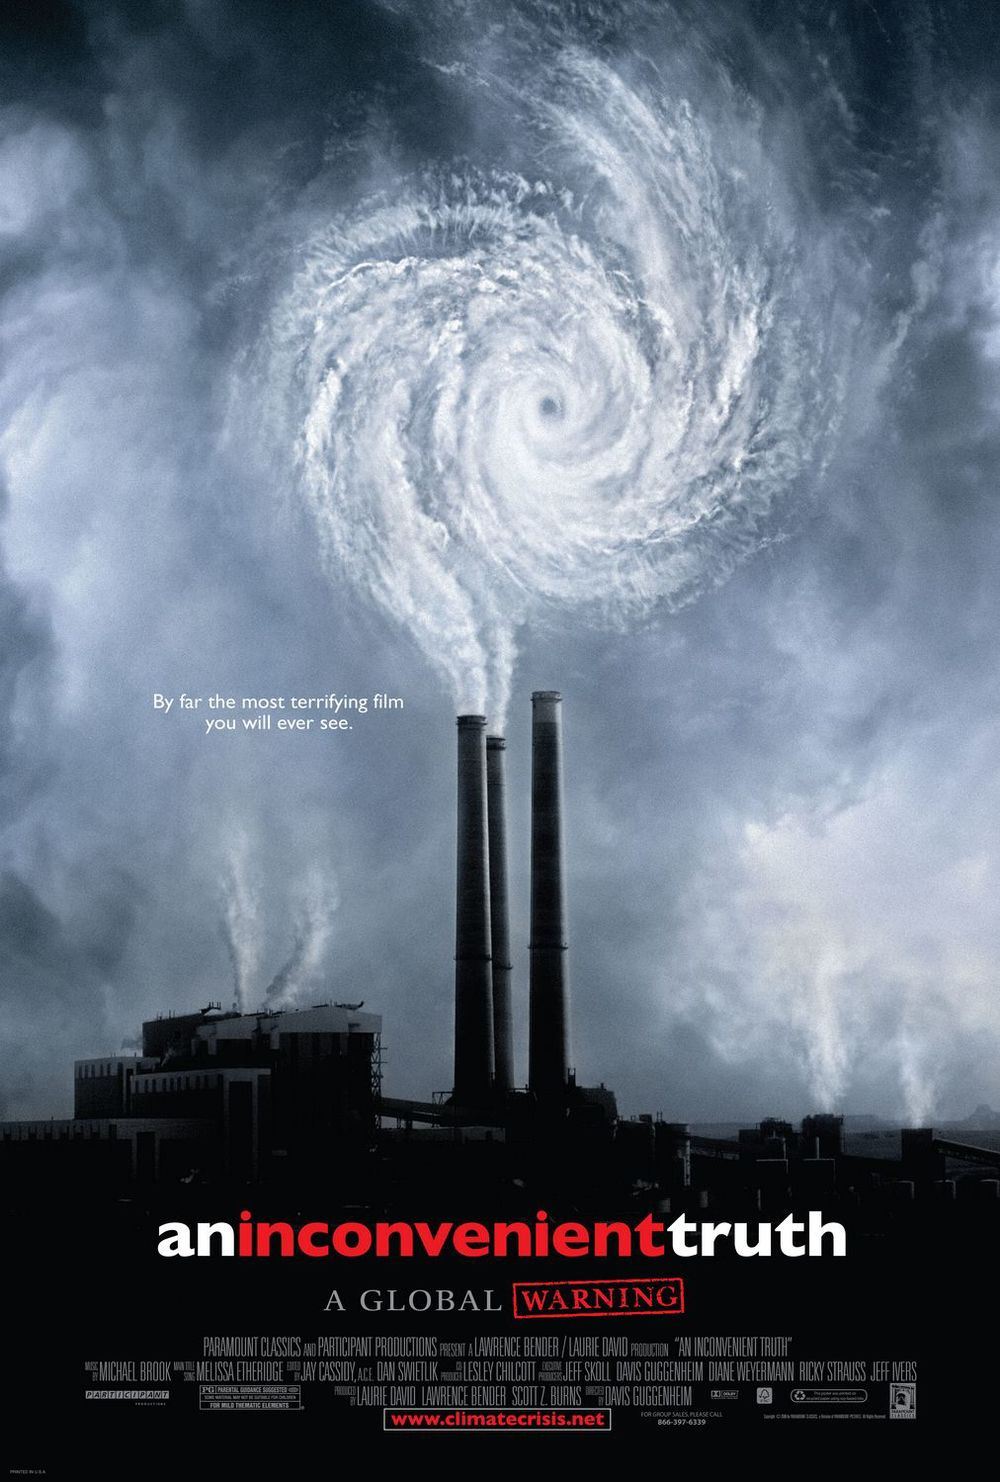 JEFF SKOLL'S AND AL GORE'S AN INCONVENIENT TRUTH